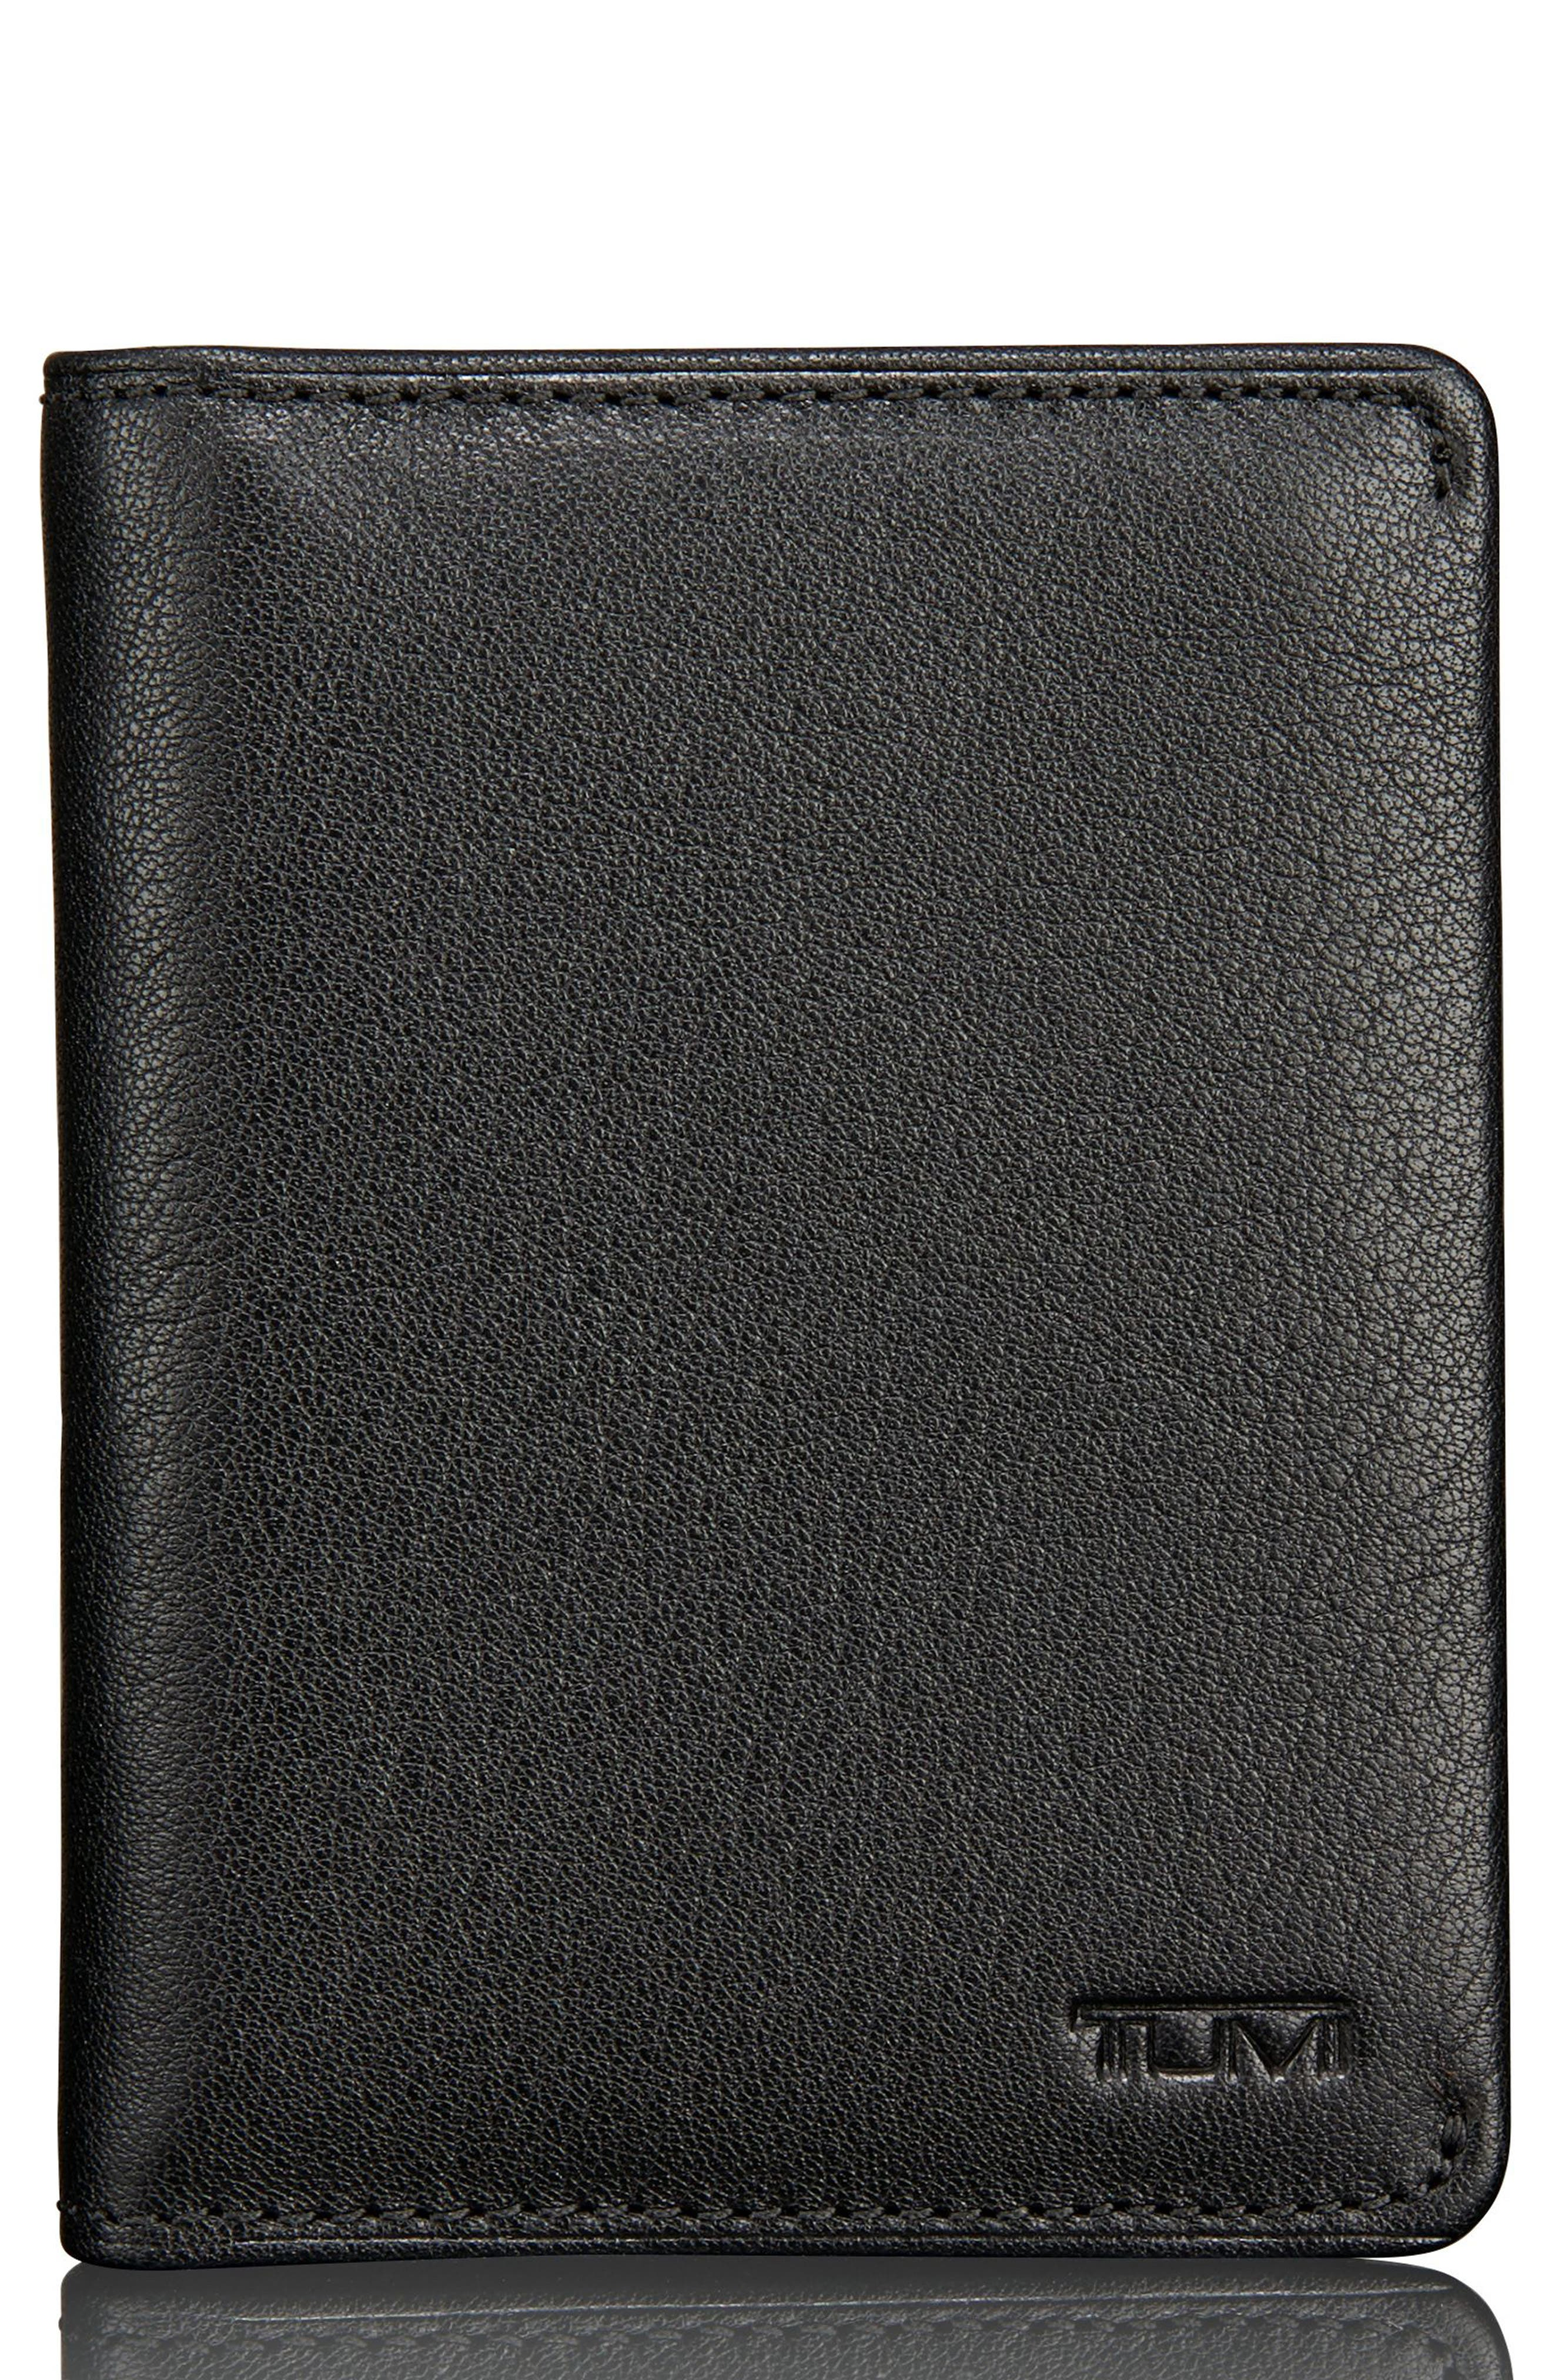 Tumi Leather Card Case